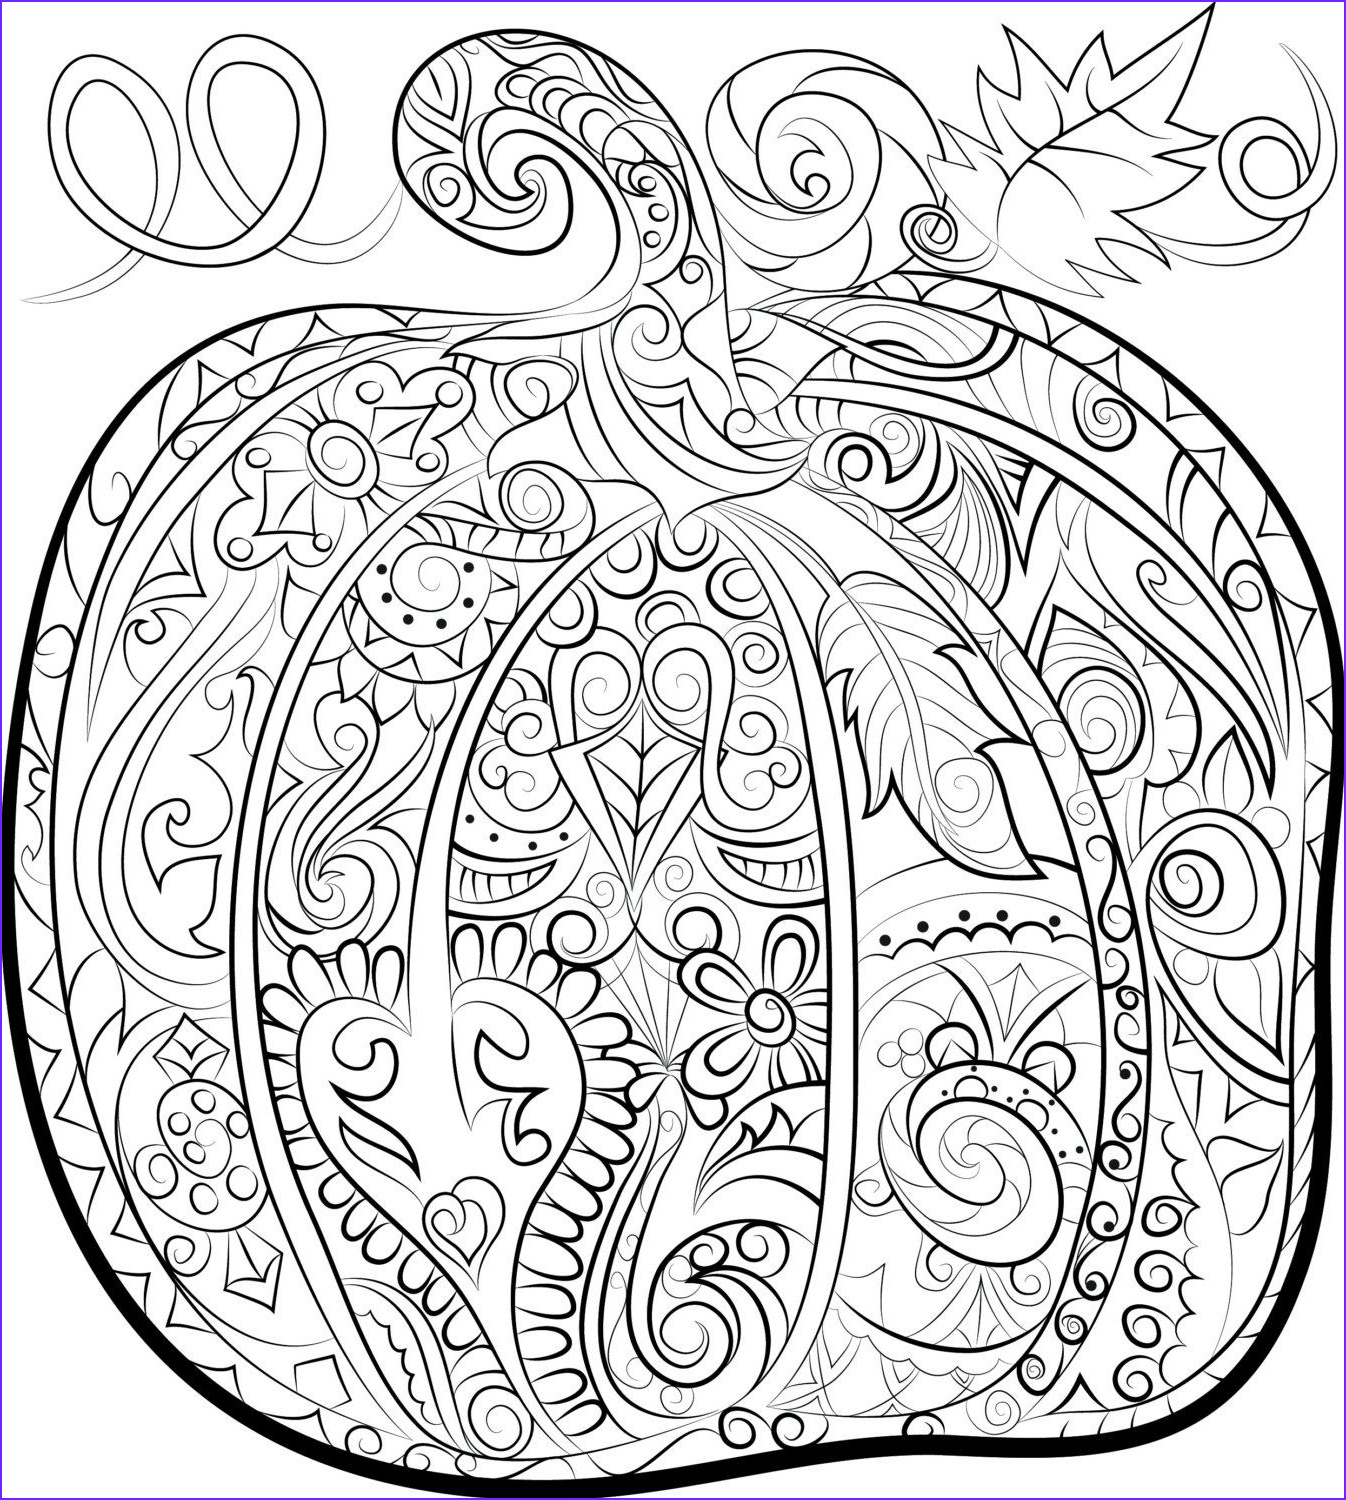 Download Adult Coloring Book Unique Image Pumpkin Adult Colouring Page Halloween Instant